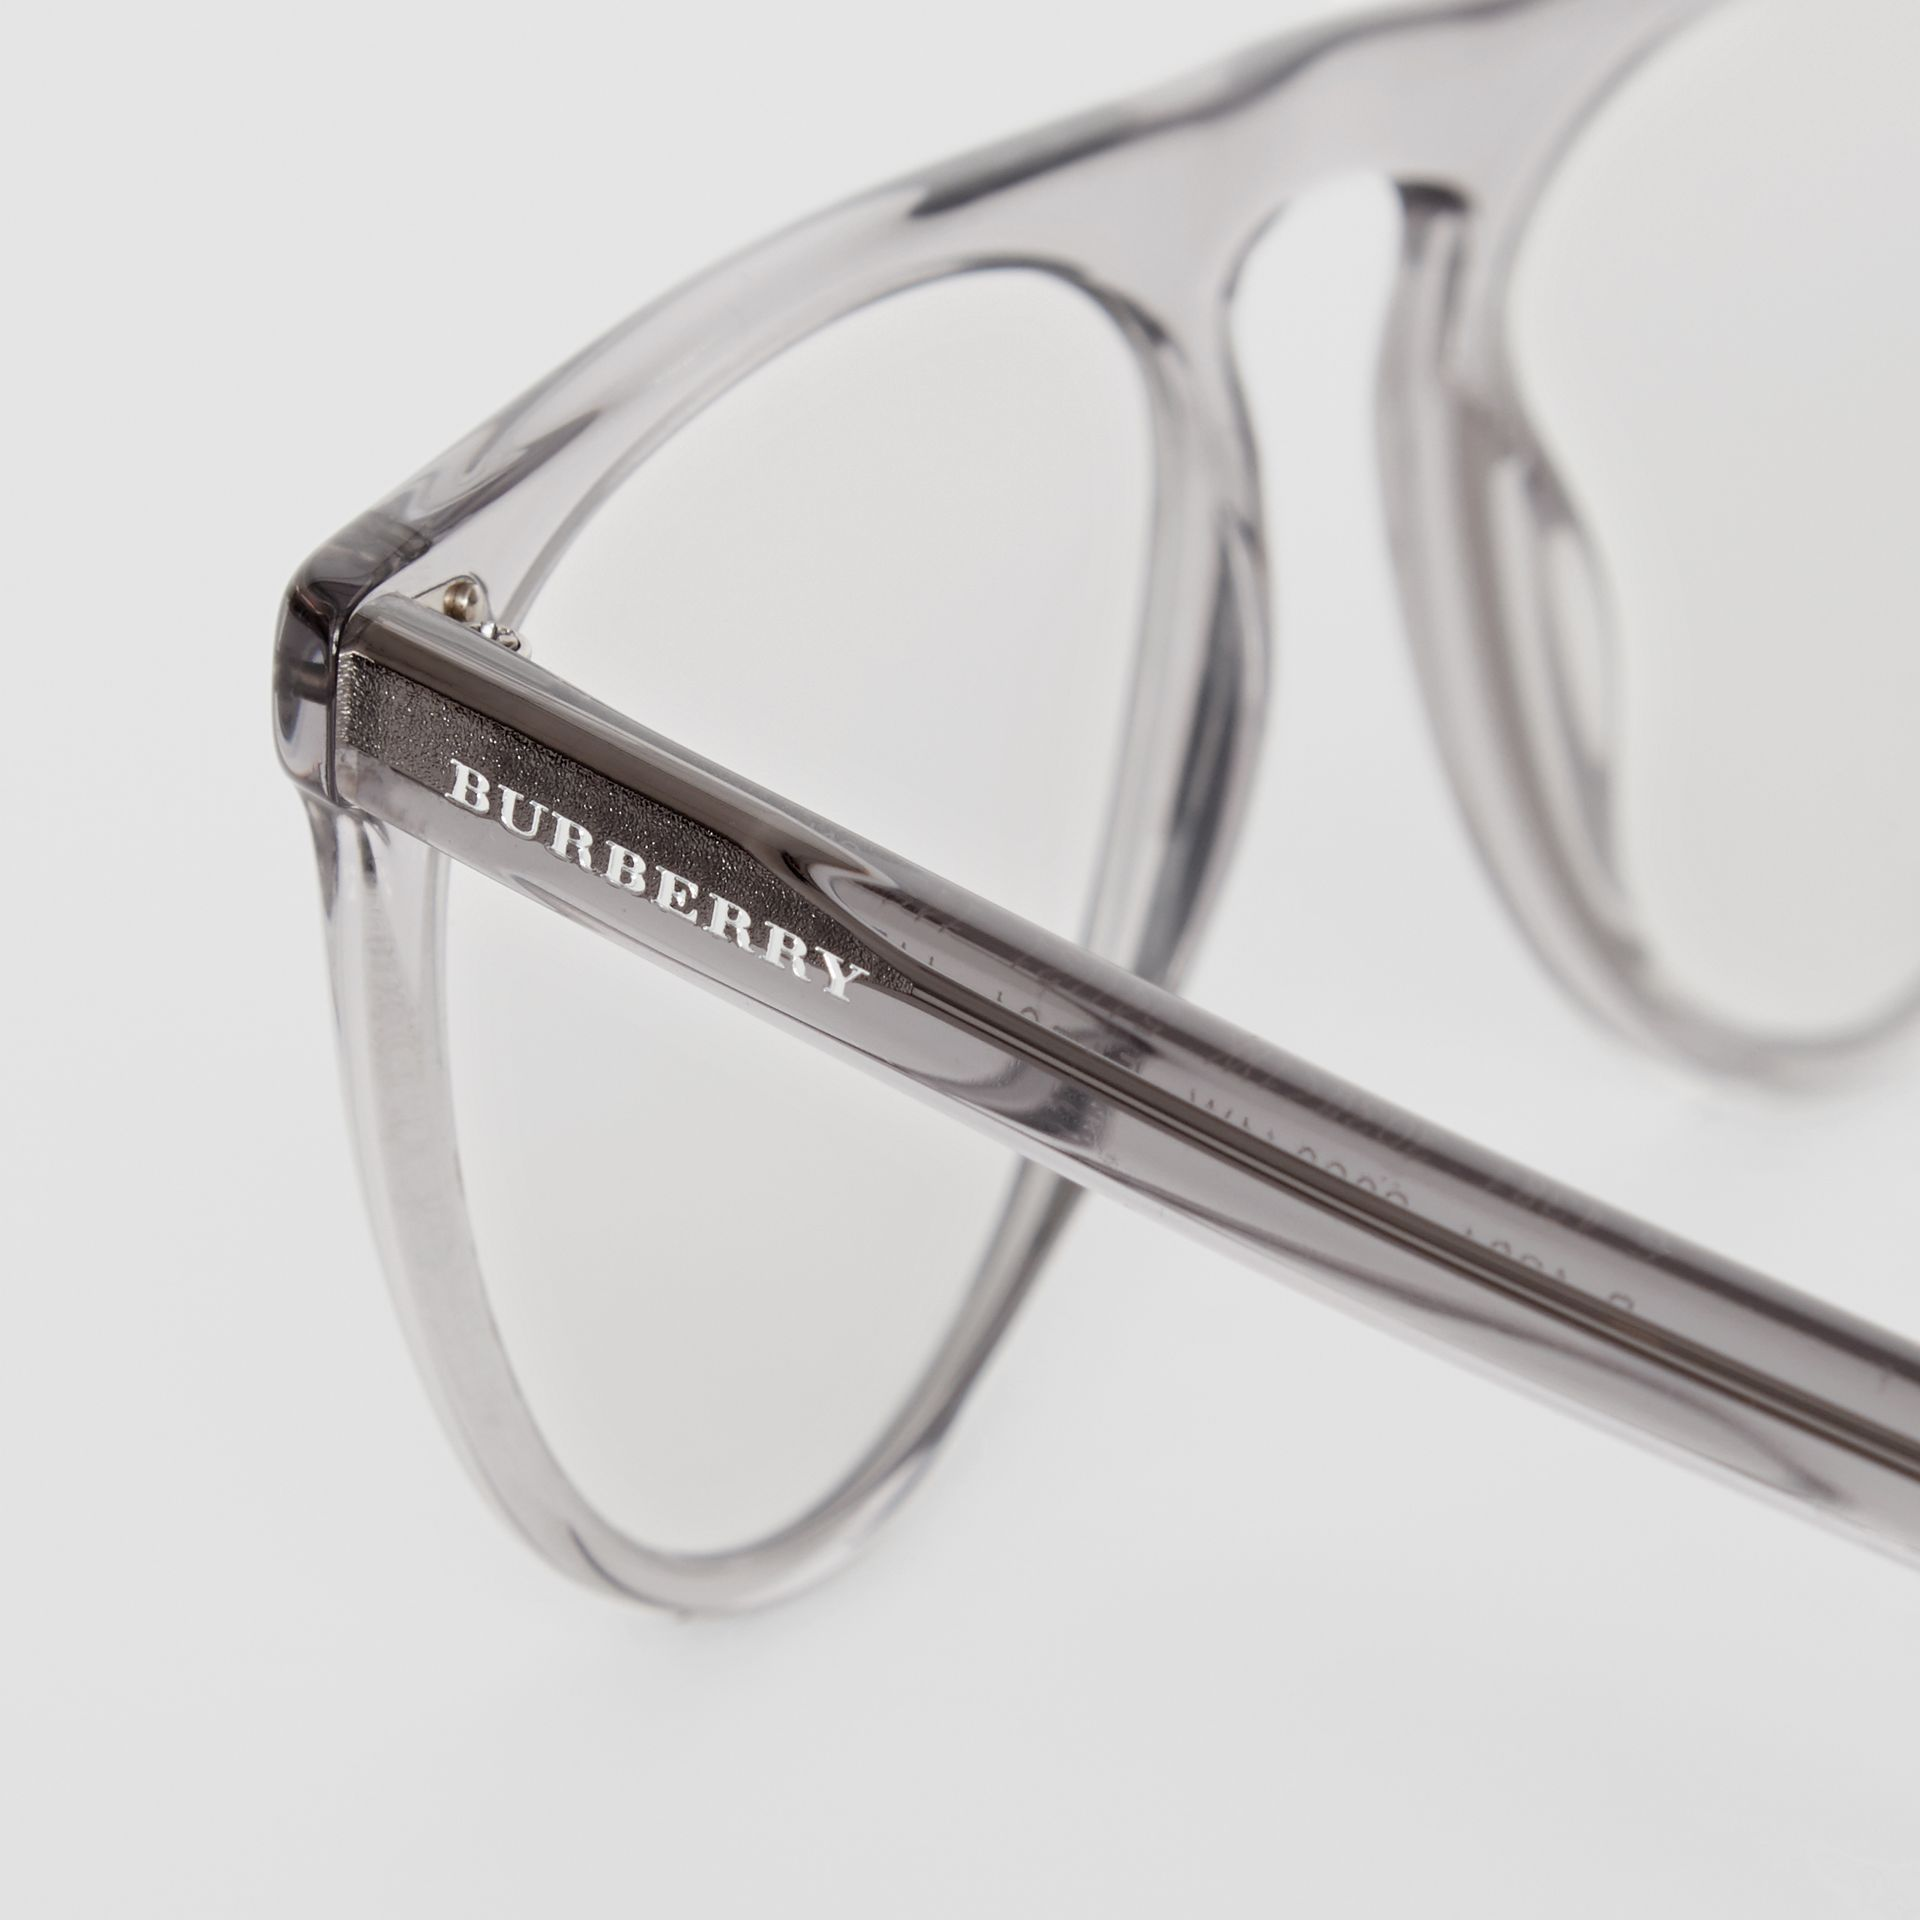 Keyhole D-shaped Optical Frames in Grey - Men | Burberry - gallery image 1